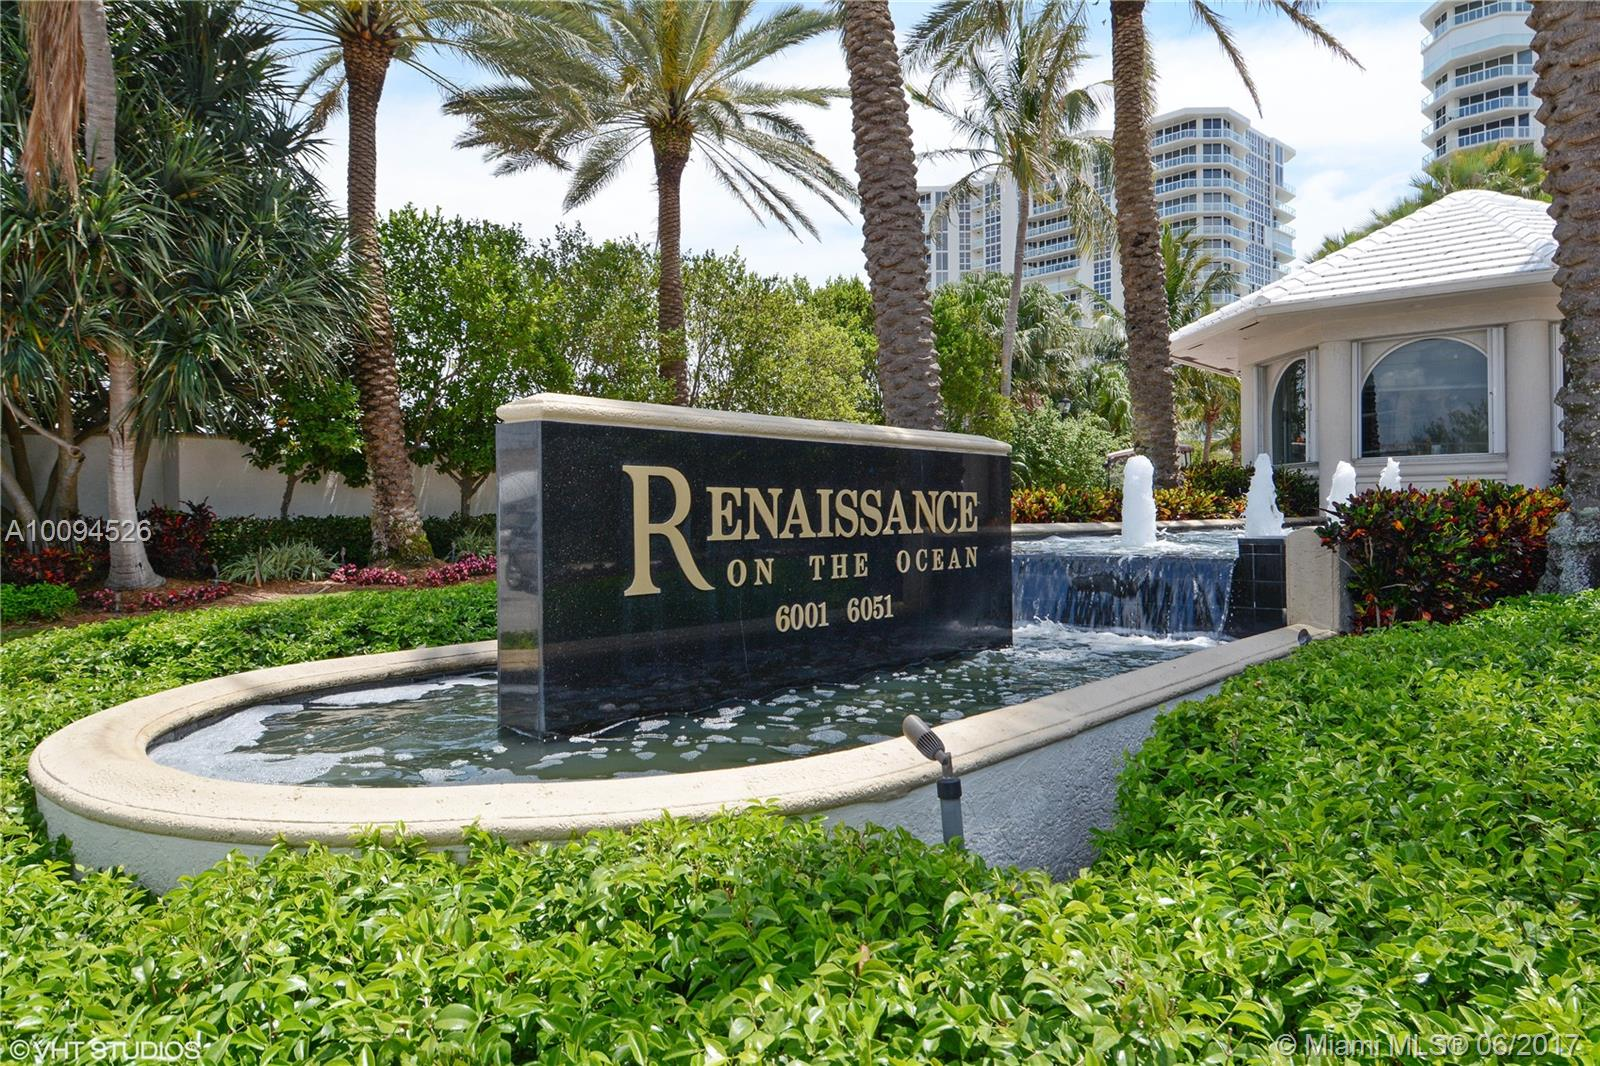 Renaissance on the Ocean South